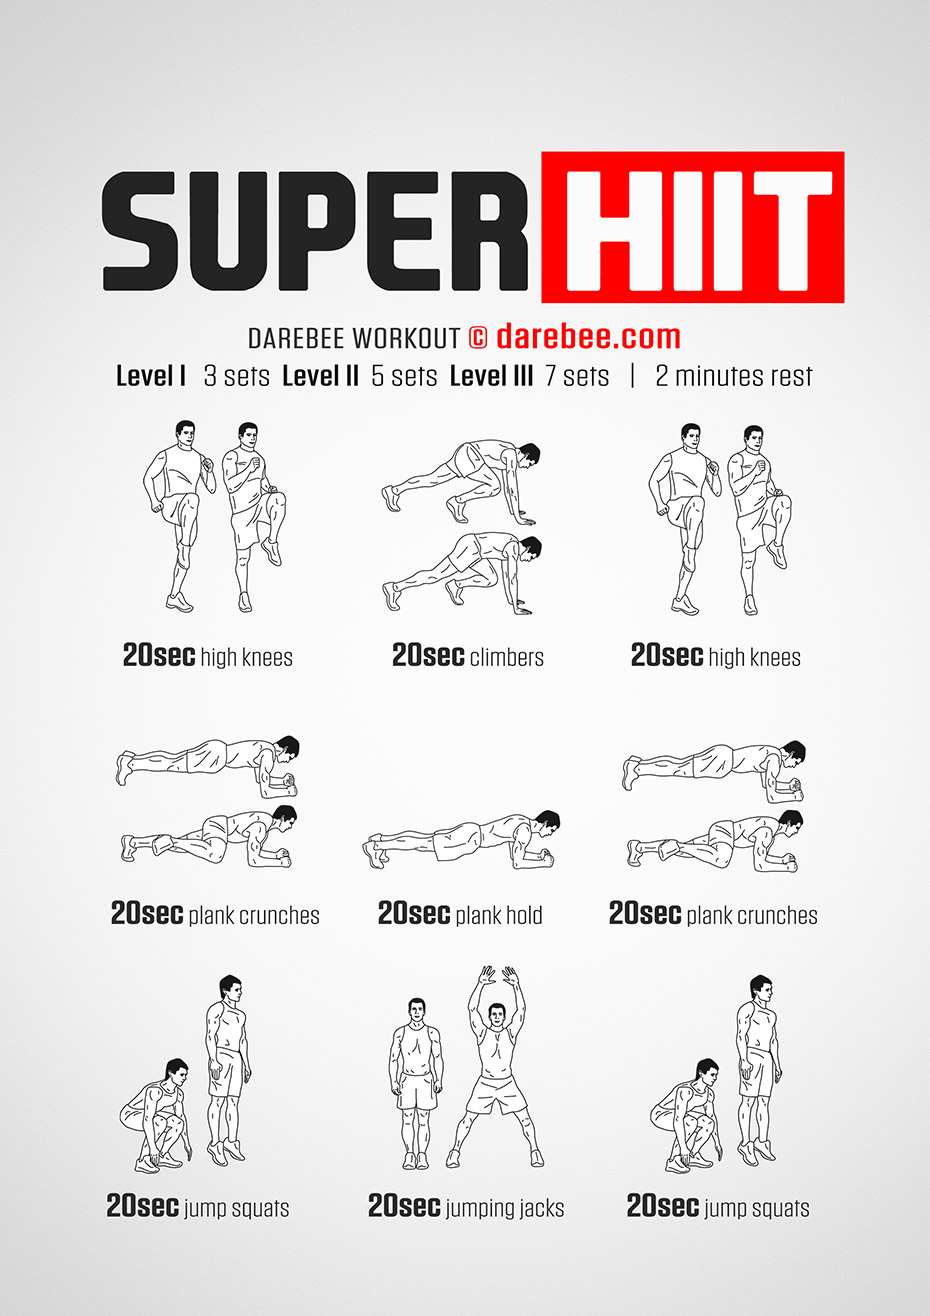 Super HIIT Workout